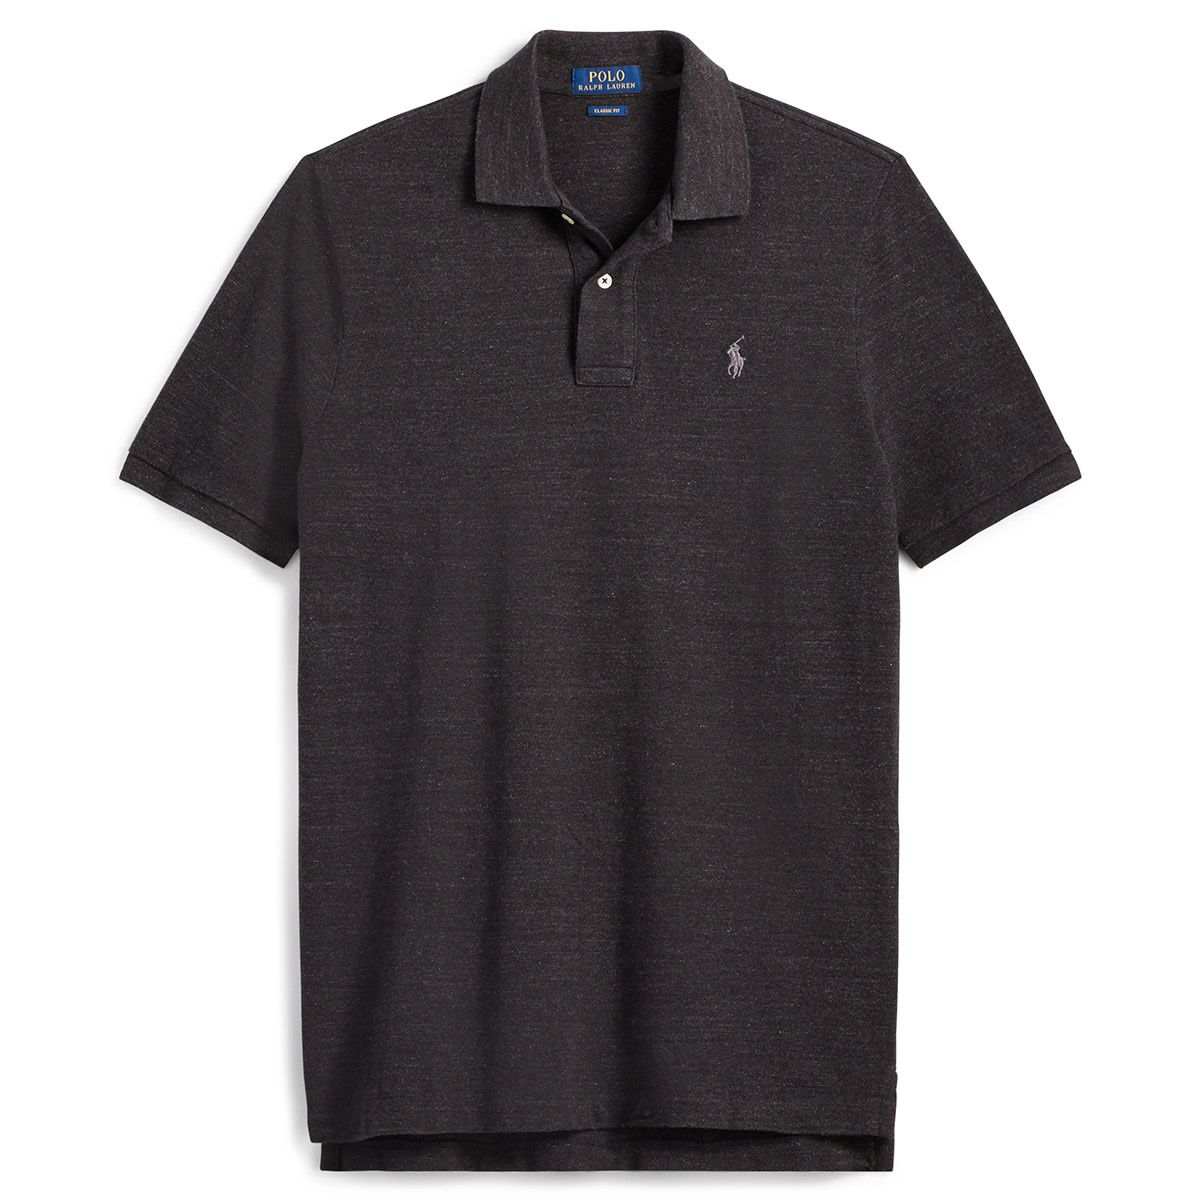 00e4c4ae79 Polo Ralph Lauren Mens Polo Shirts - Macy s